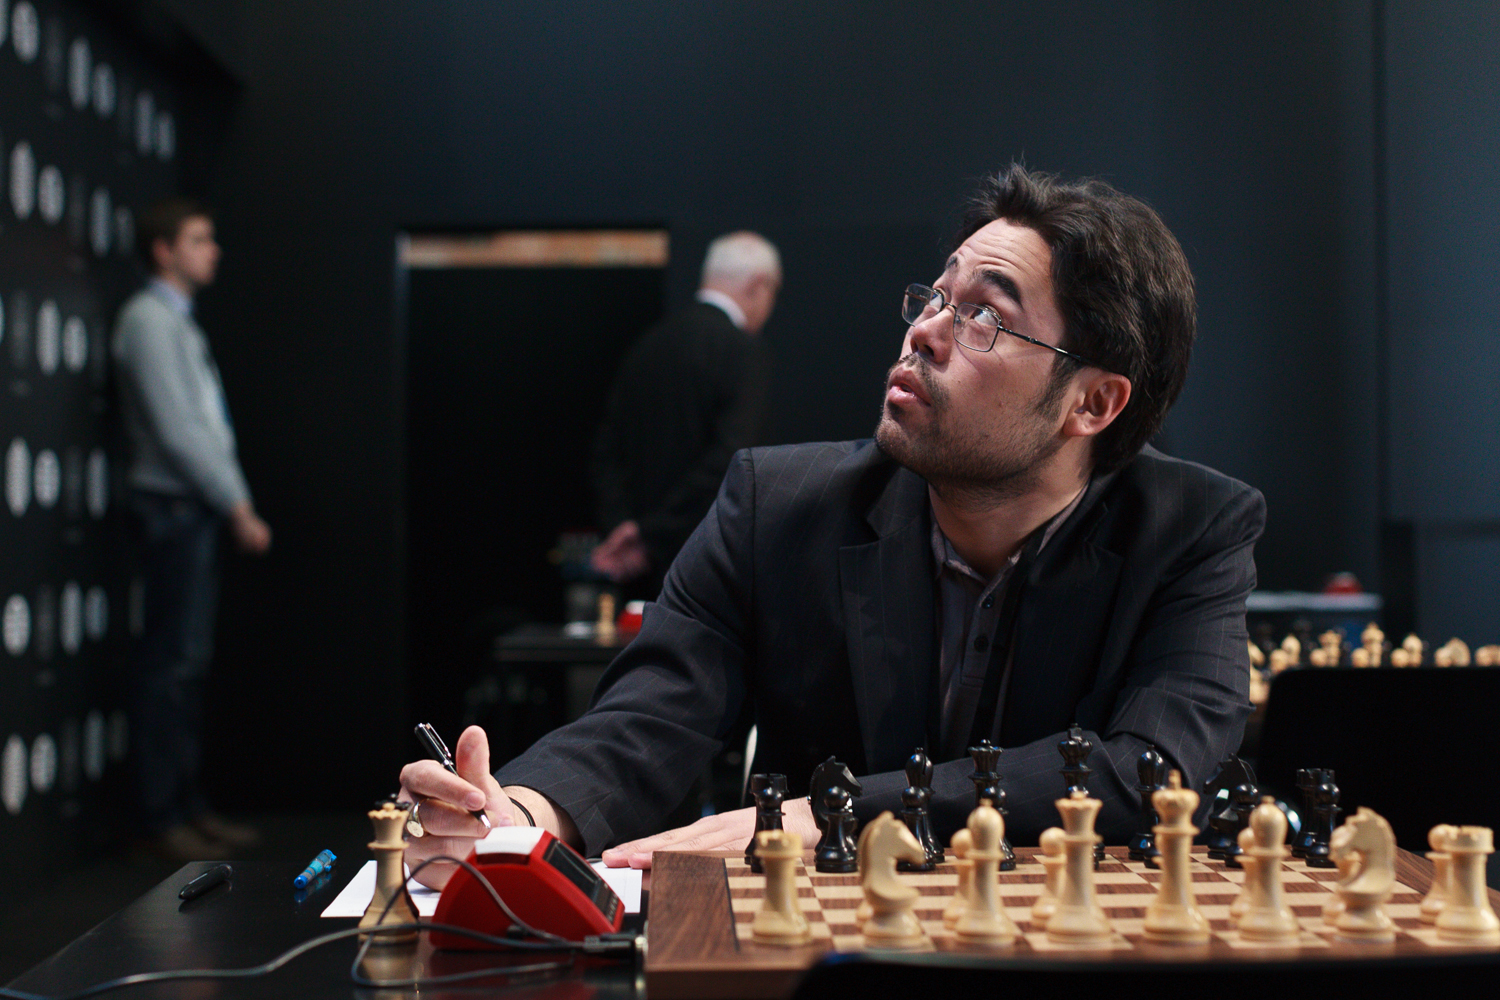 Photo courtesy of World Chess